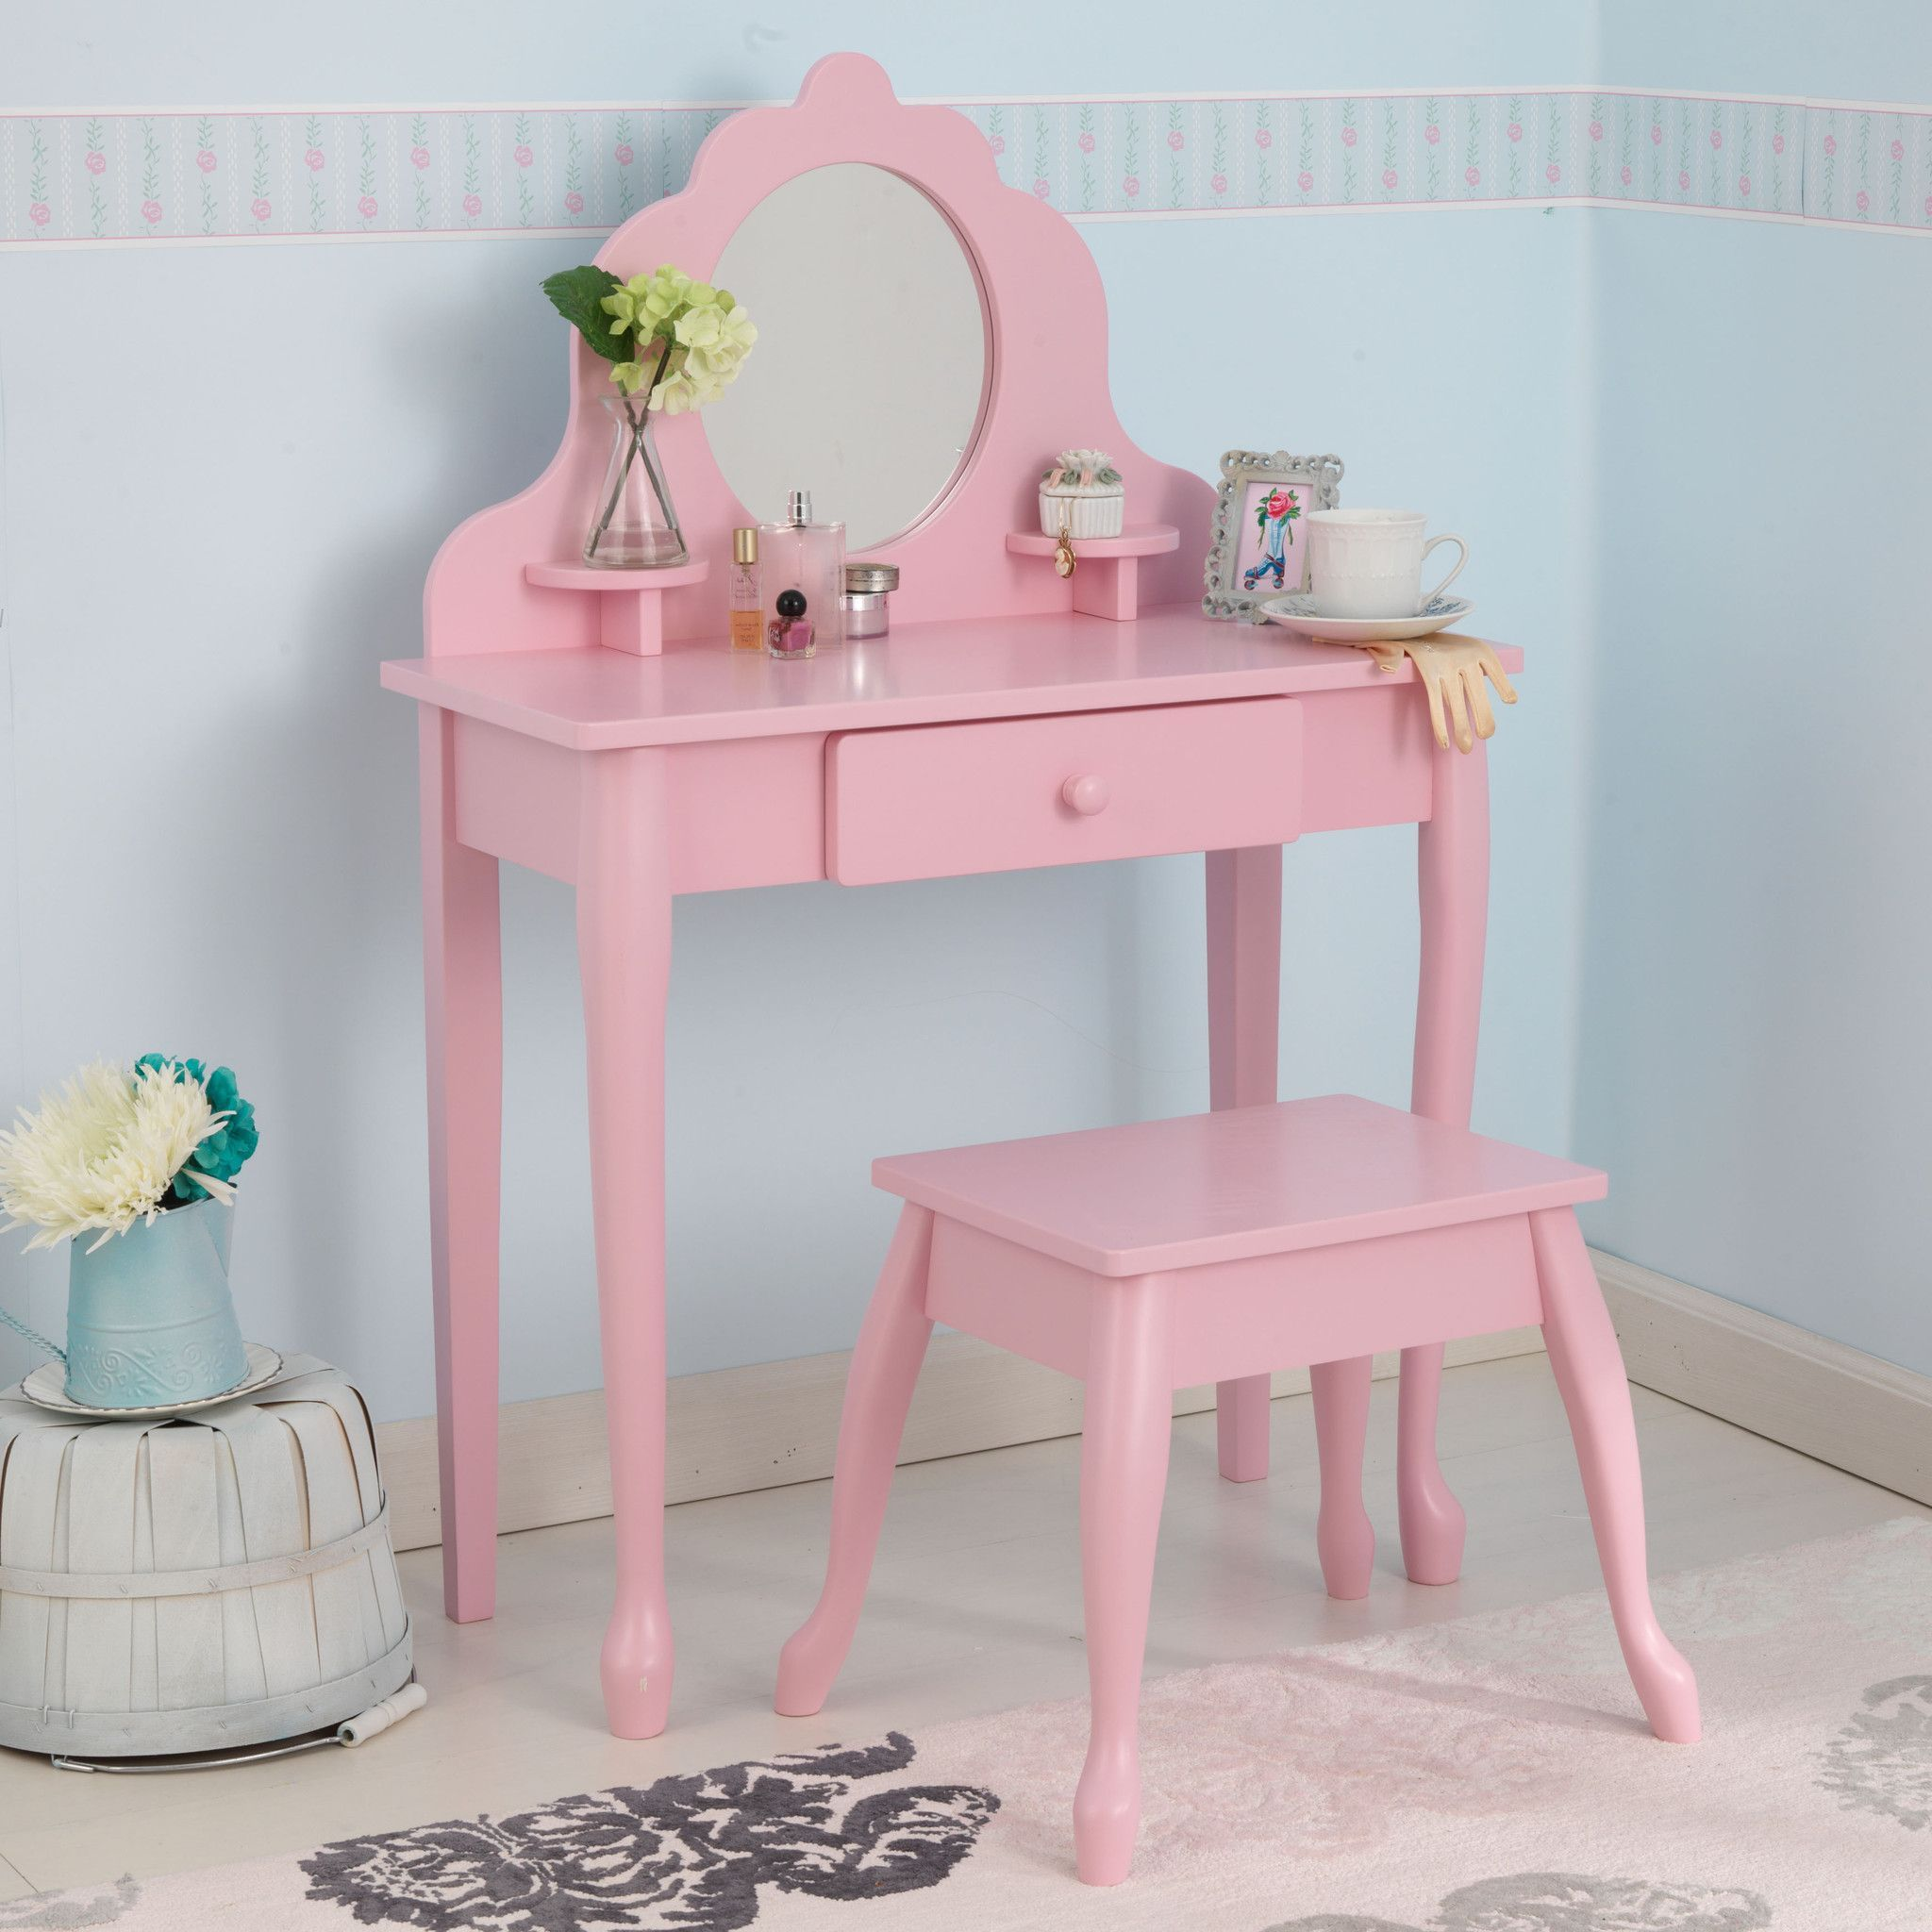 KidKraft Medium Diva Table Stool Pink 13023 Vanity tables